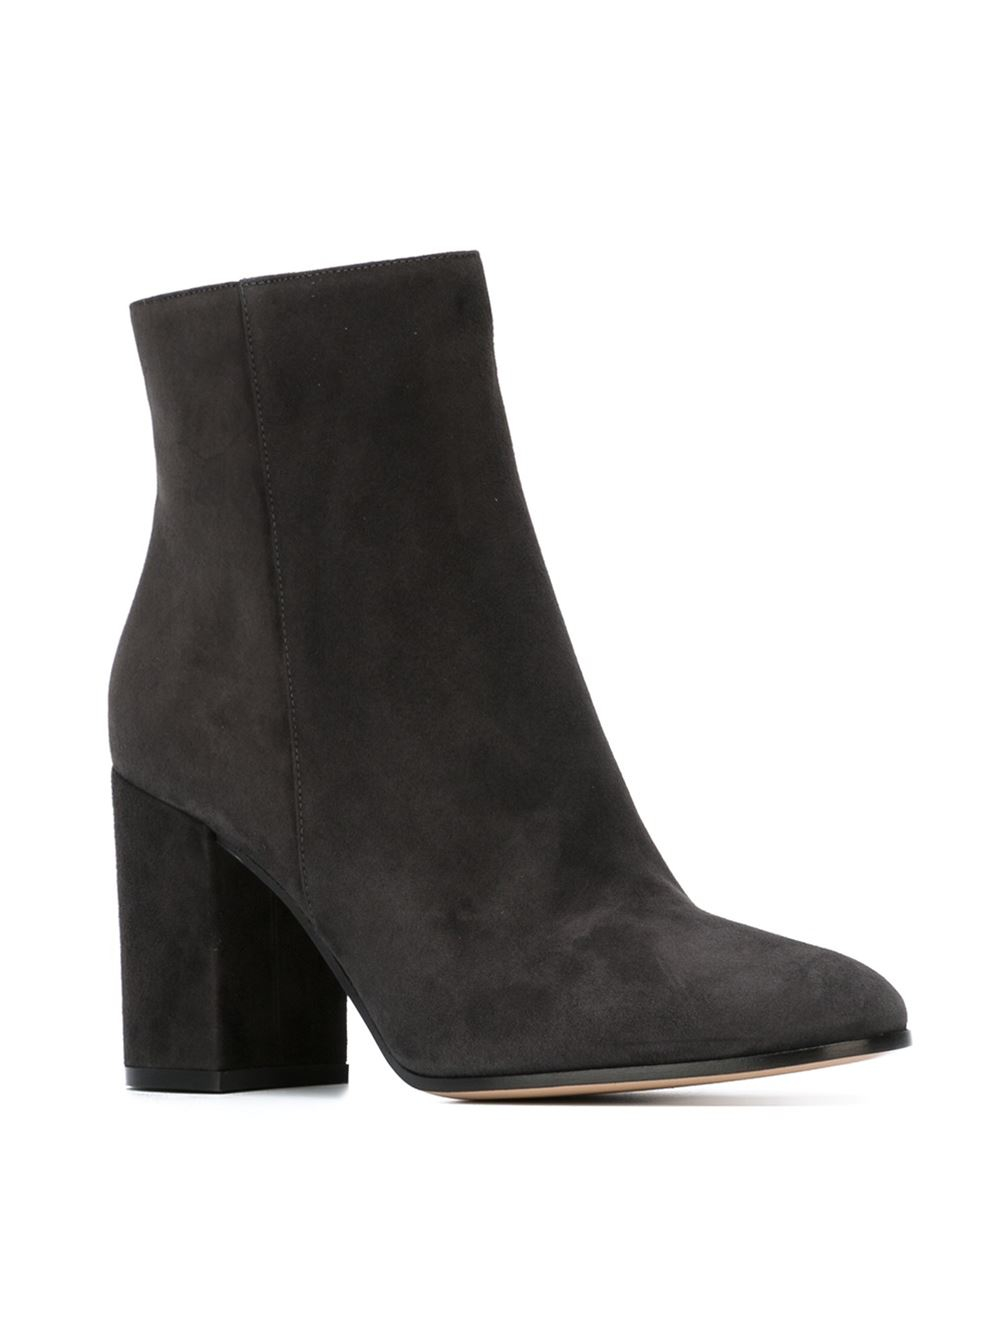 gianvito rossi heeled suede boots in gray grey lyst. Black Bedroom Furniture Sets. Home Design Ideas